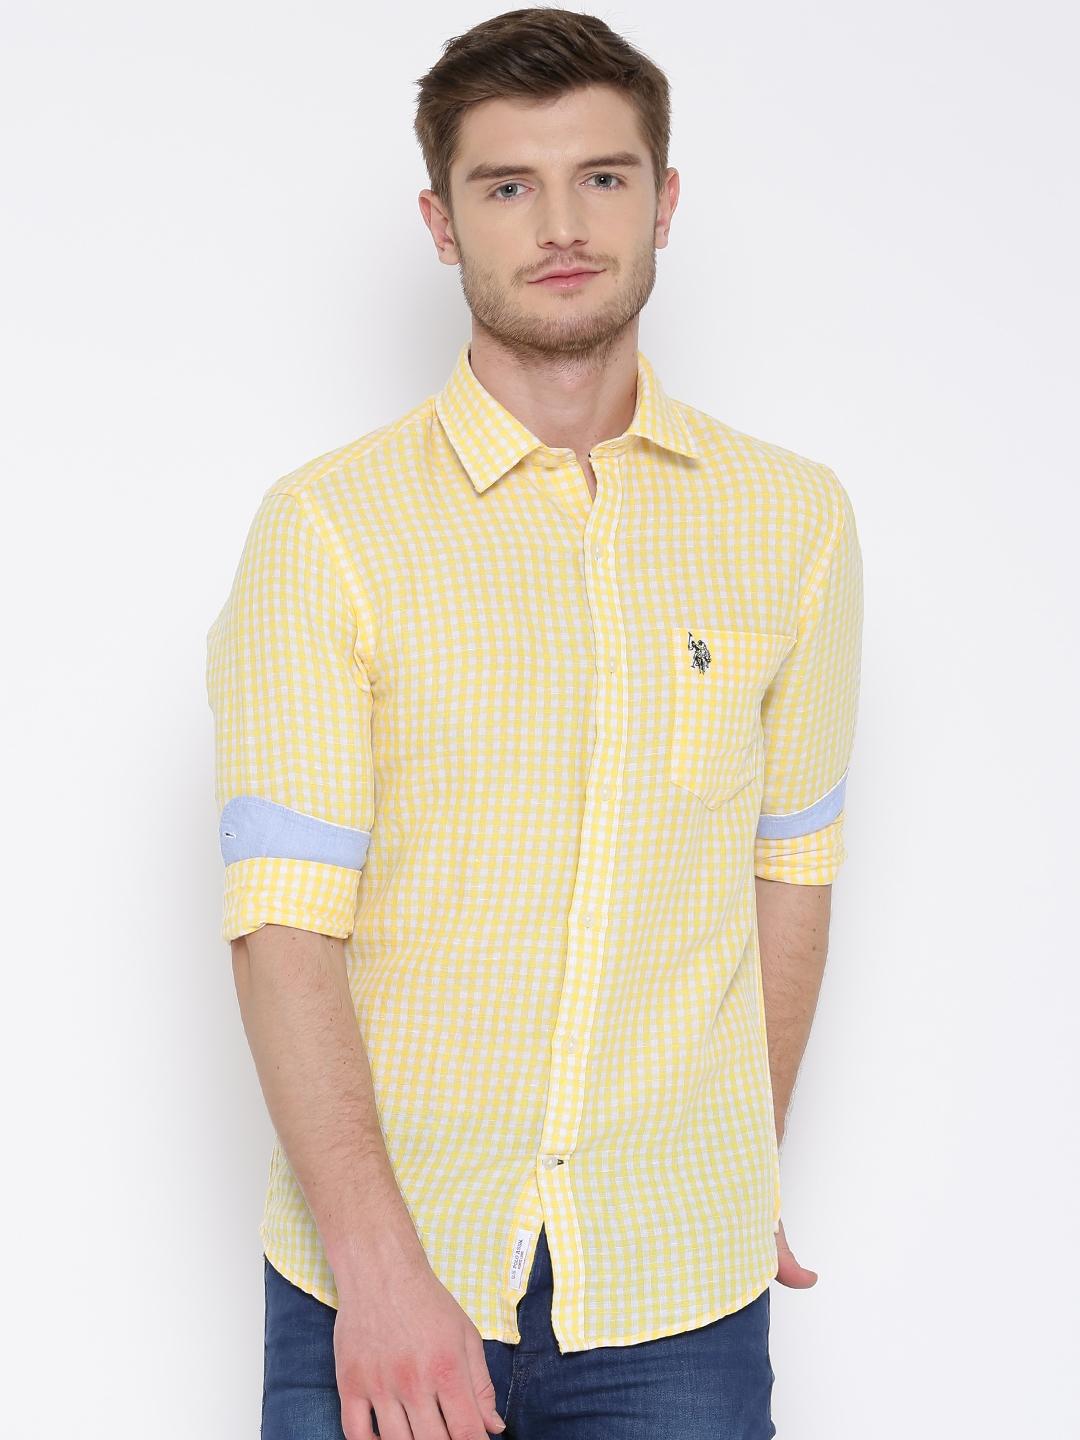 429f7fdd9 Buy U.S. Polo Assn. Yellow Gingham Check Linen Tailored Casual Shirt ...